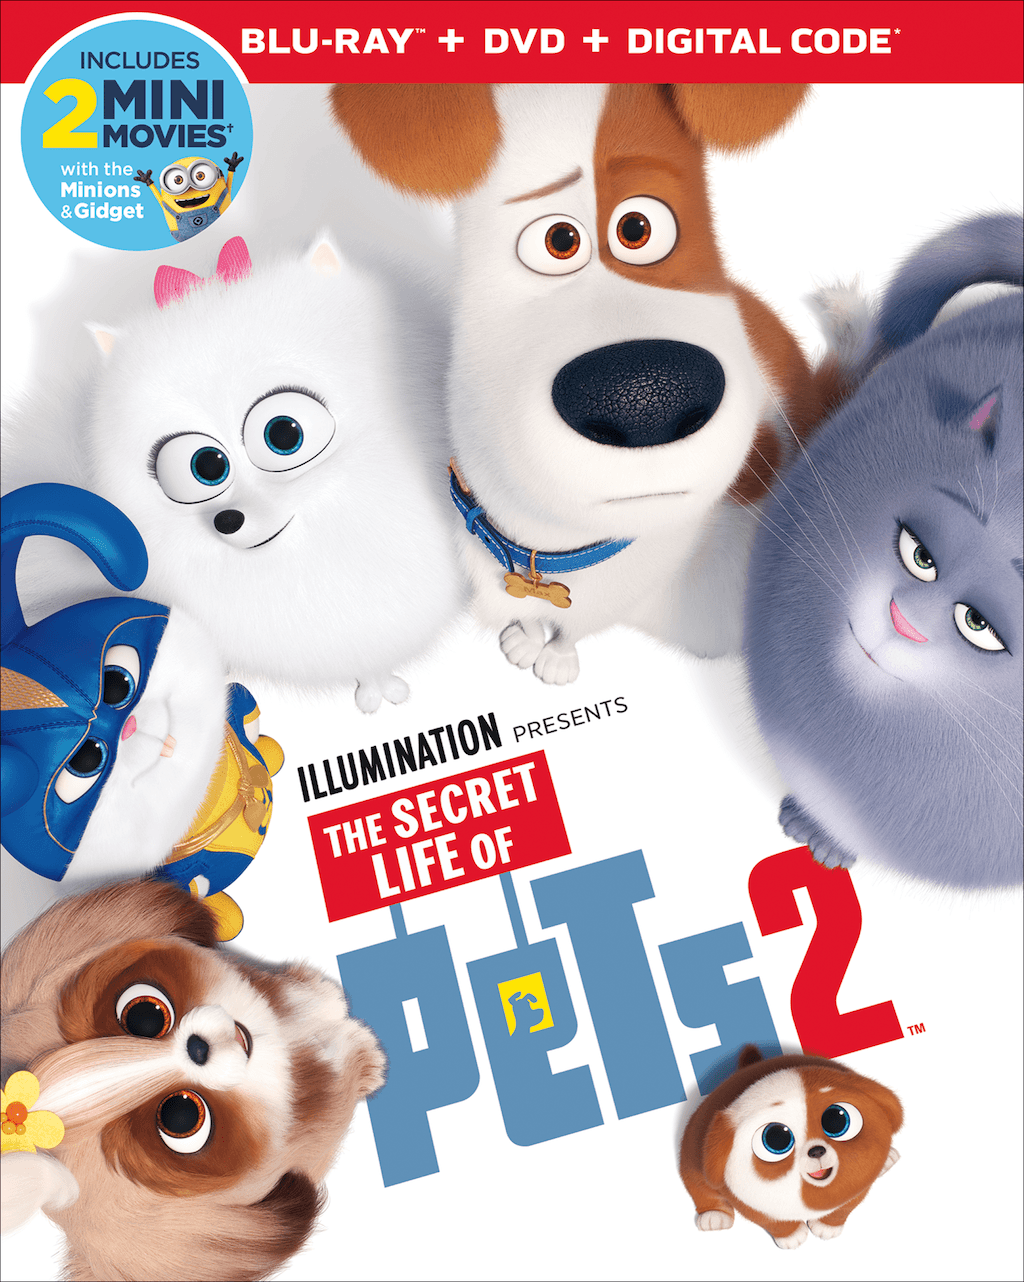 Max entrusts Gidget with his toy, Busy Bee, but ends up losing it. Snowball and Daisy try to rescue a Tiger cub from the circus in Secret Life of Pets 2.